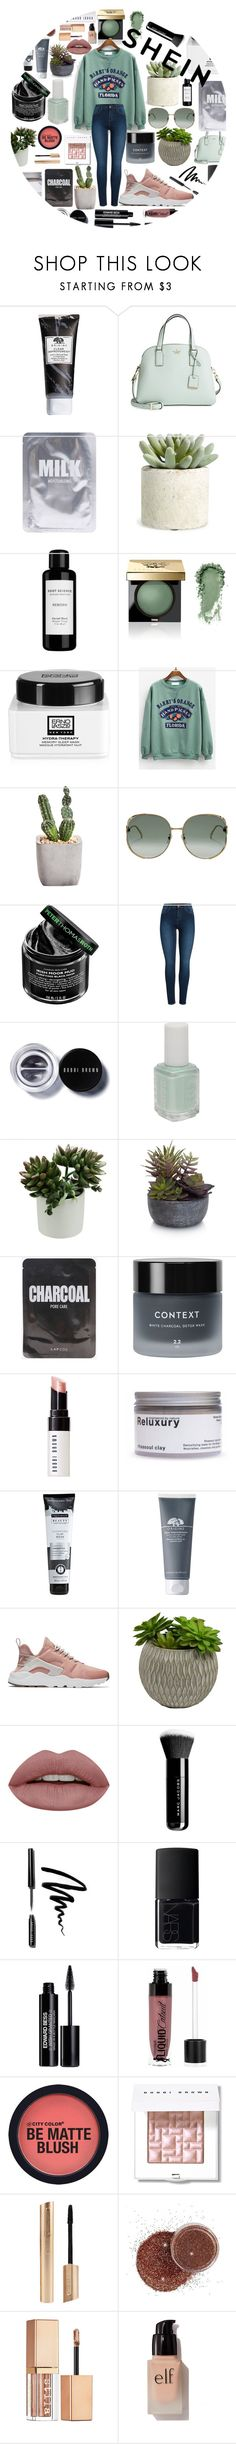 """""""Shein"""" by meinersk45195 ❤ liked on Polyvore featuring Origins, Kate Spade, Lapcos, Allstate Floral, Root Science, Bobbi Brown Cosmetics, Erno Laszlo, Gucci, Peter Thomas Roth and Pieces"""